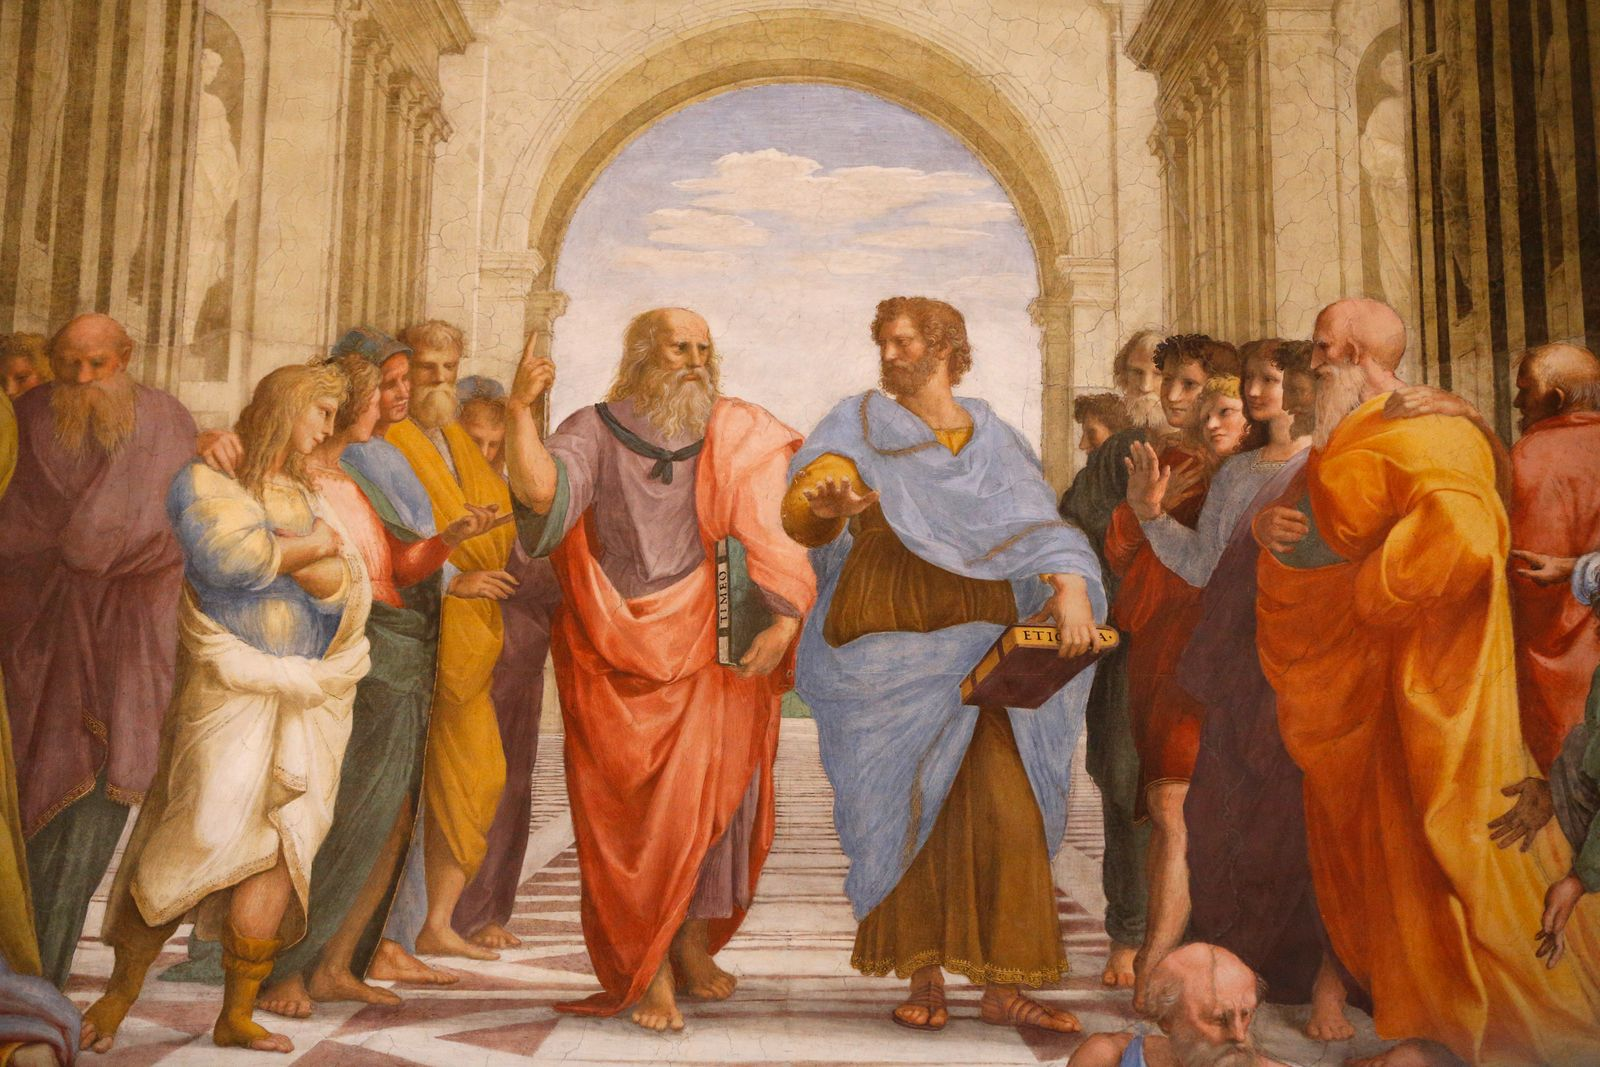 NICHT MEHR VERWENDEN! - The School of Athens. Detail of a mural by Raphael painted for P